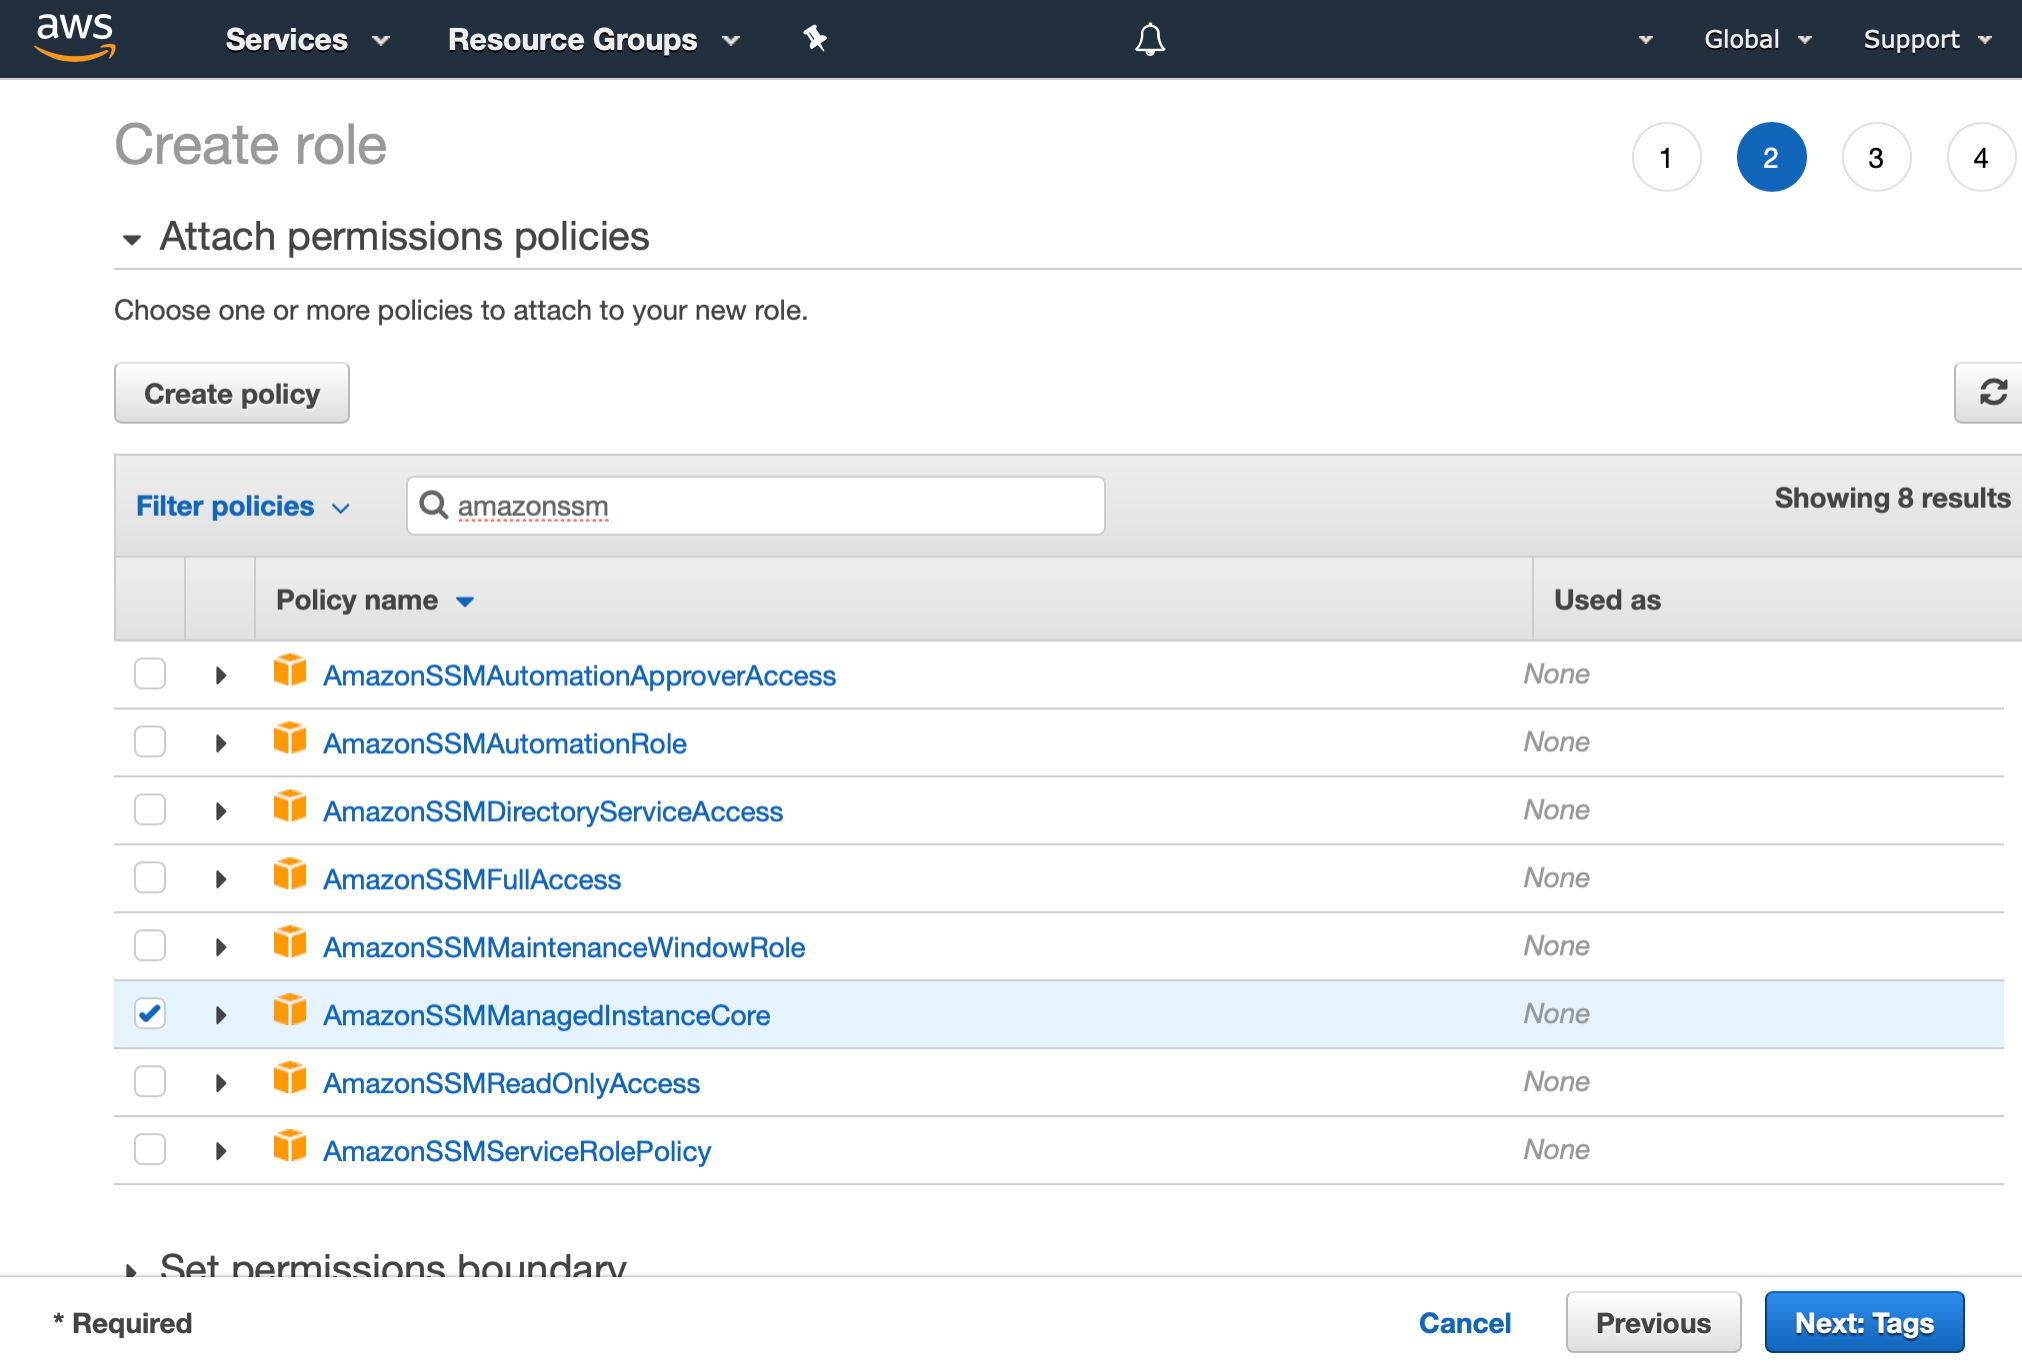 AWS Management Console shows the Attach permissions policies step of the IAM Create role wizard. We have selected AmazonSSMManagedInstanceCore policy with a checkmark.